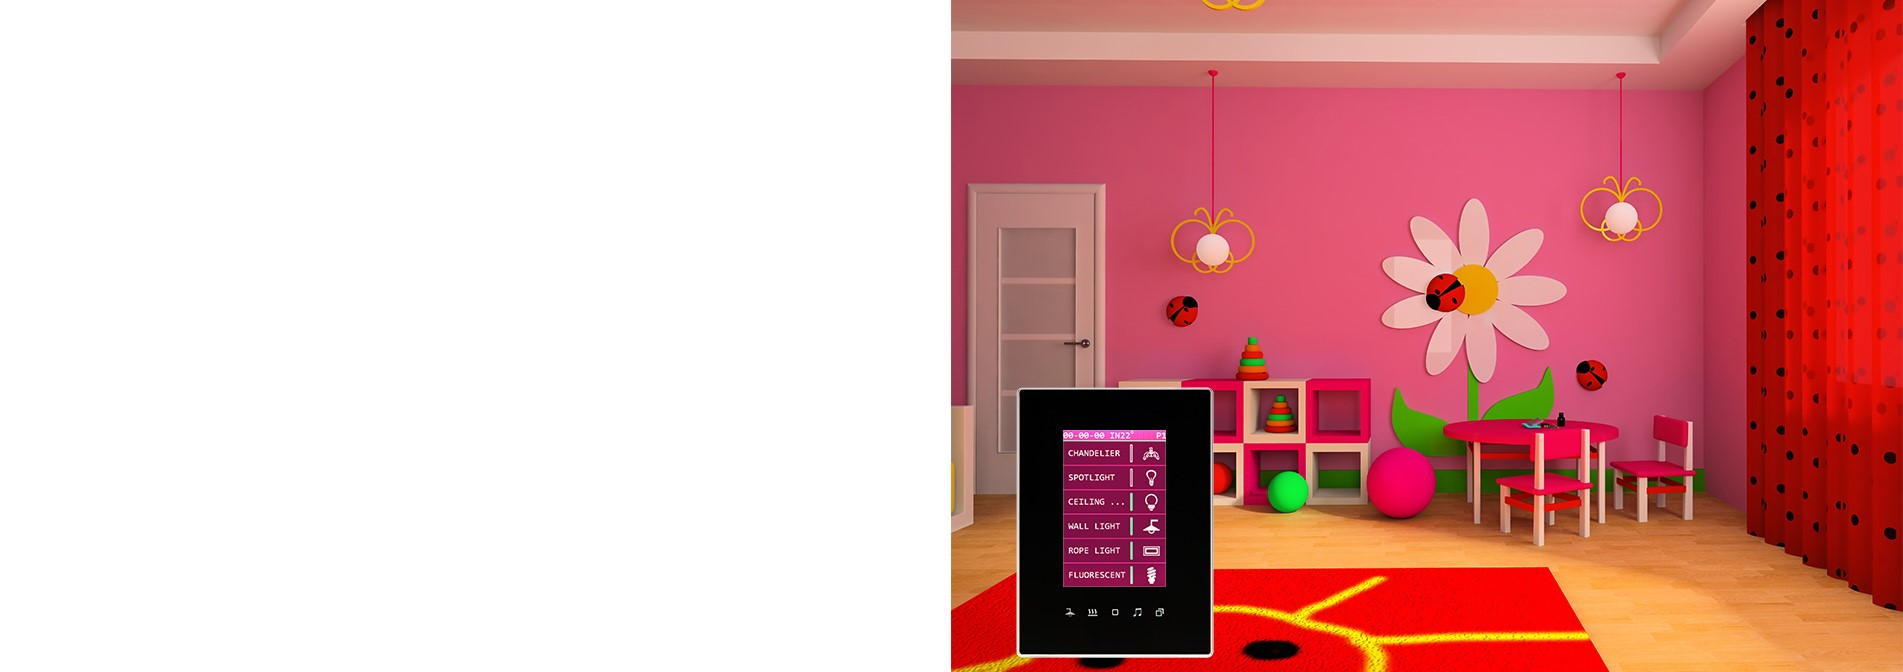 Luna TFT can change its background color- TIS smart home